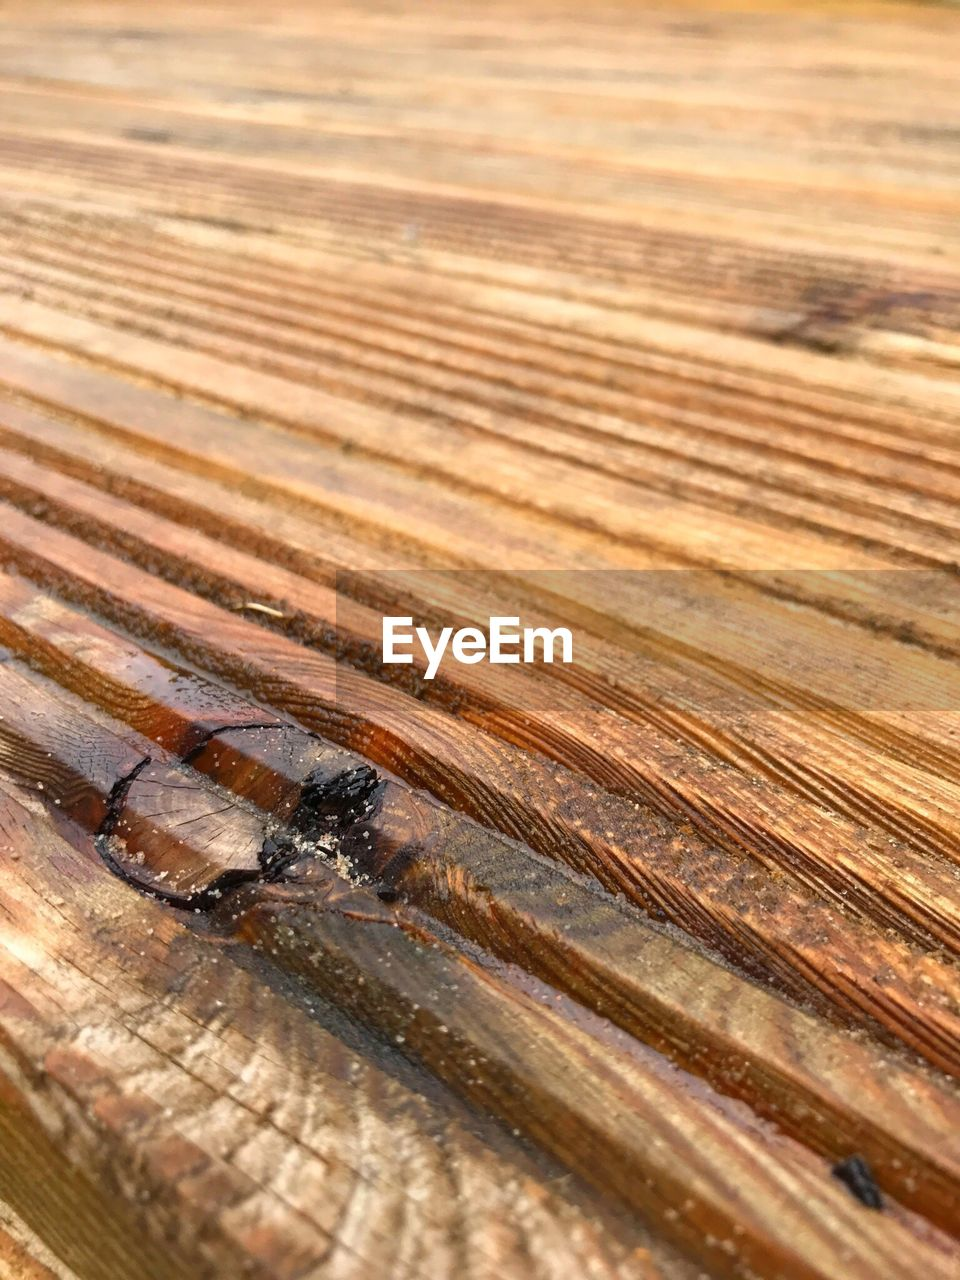 wood - material, pattern, no people, close-up, brown, selective focus, textured, full frame, high angle view, outdoors, animal, day, nature, invertebrate, animals in the wild, animal wildlife, backgrounds, insect, animal themes, wood